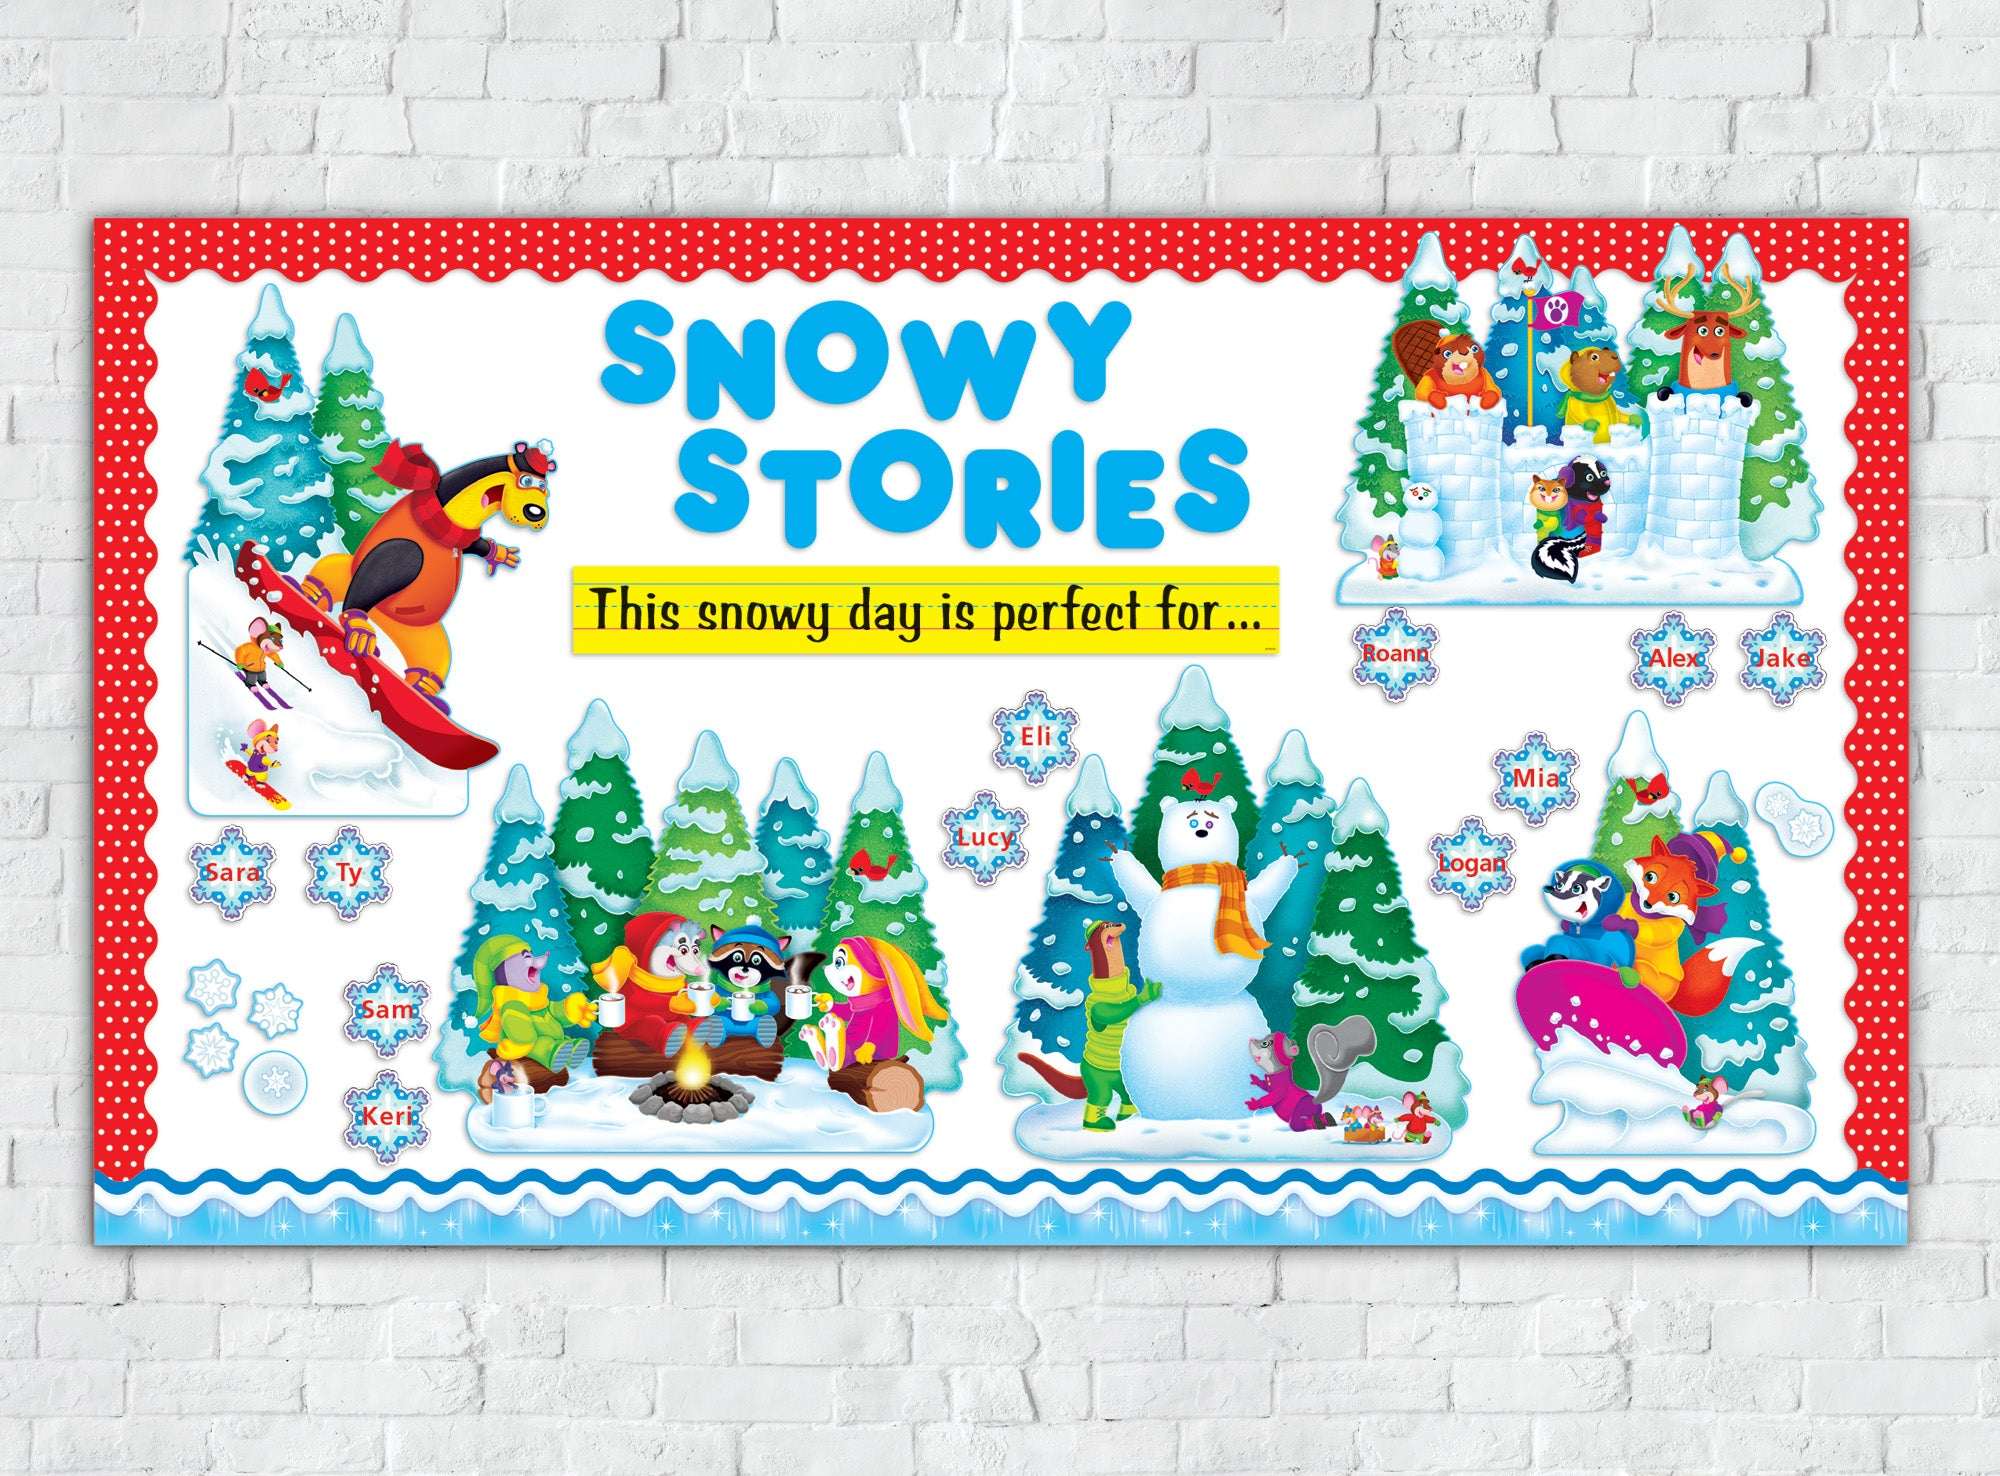 Wonderful Winter Snowy Stories Bulletin Board Idea